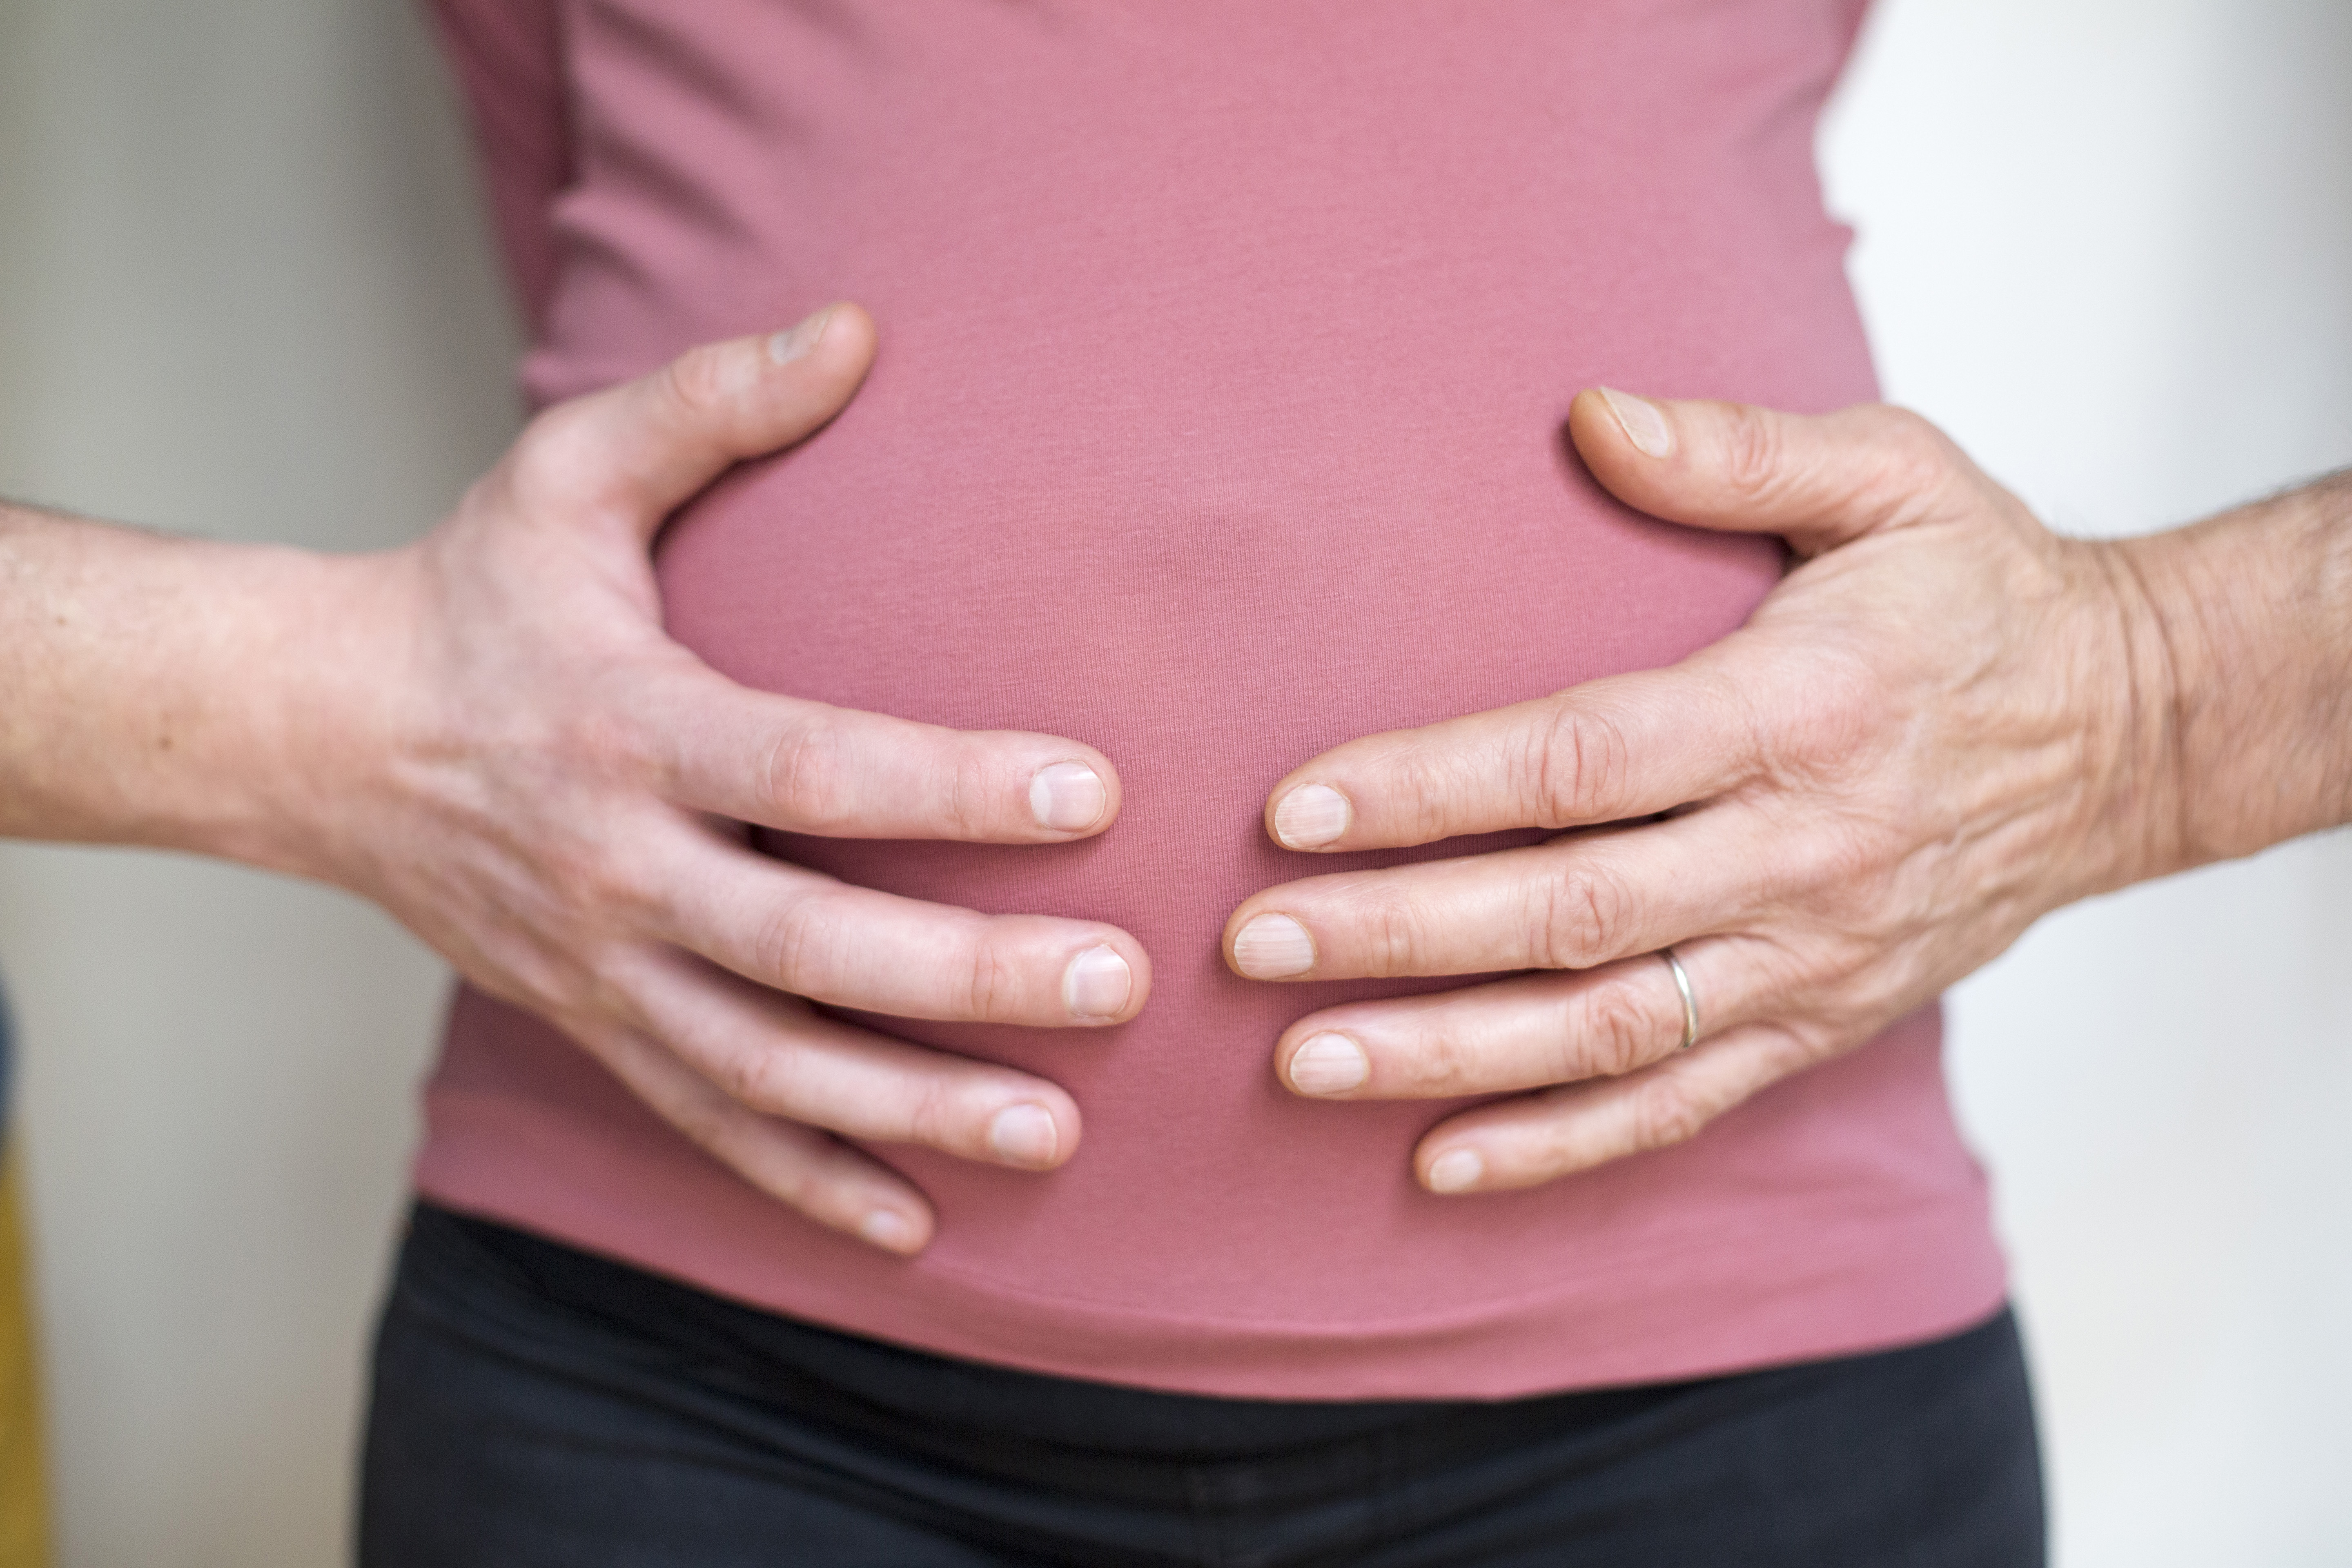 How does a surrogate mother work? Here's what you need to know